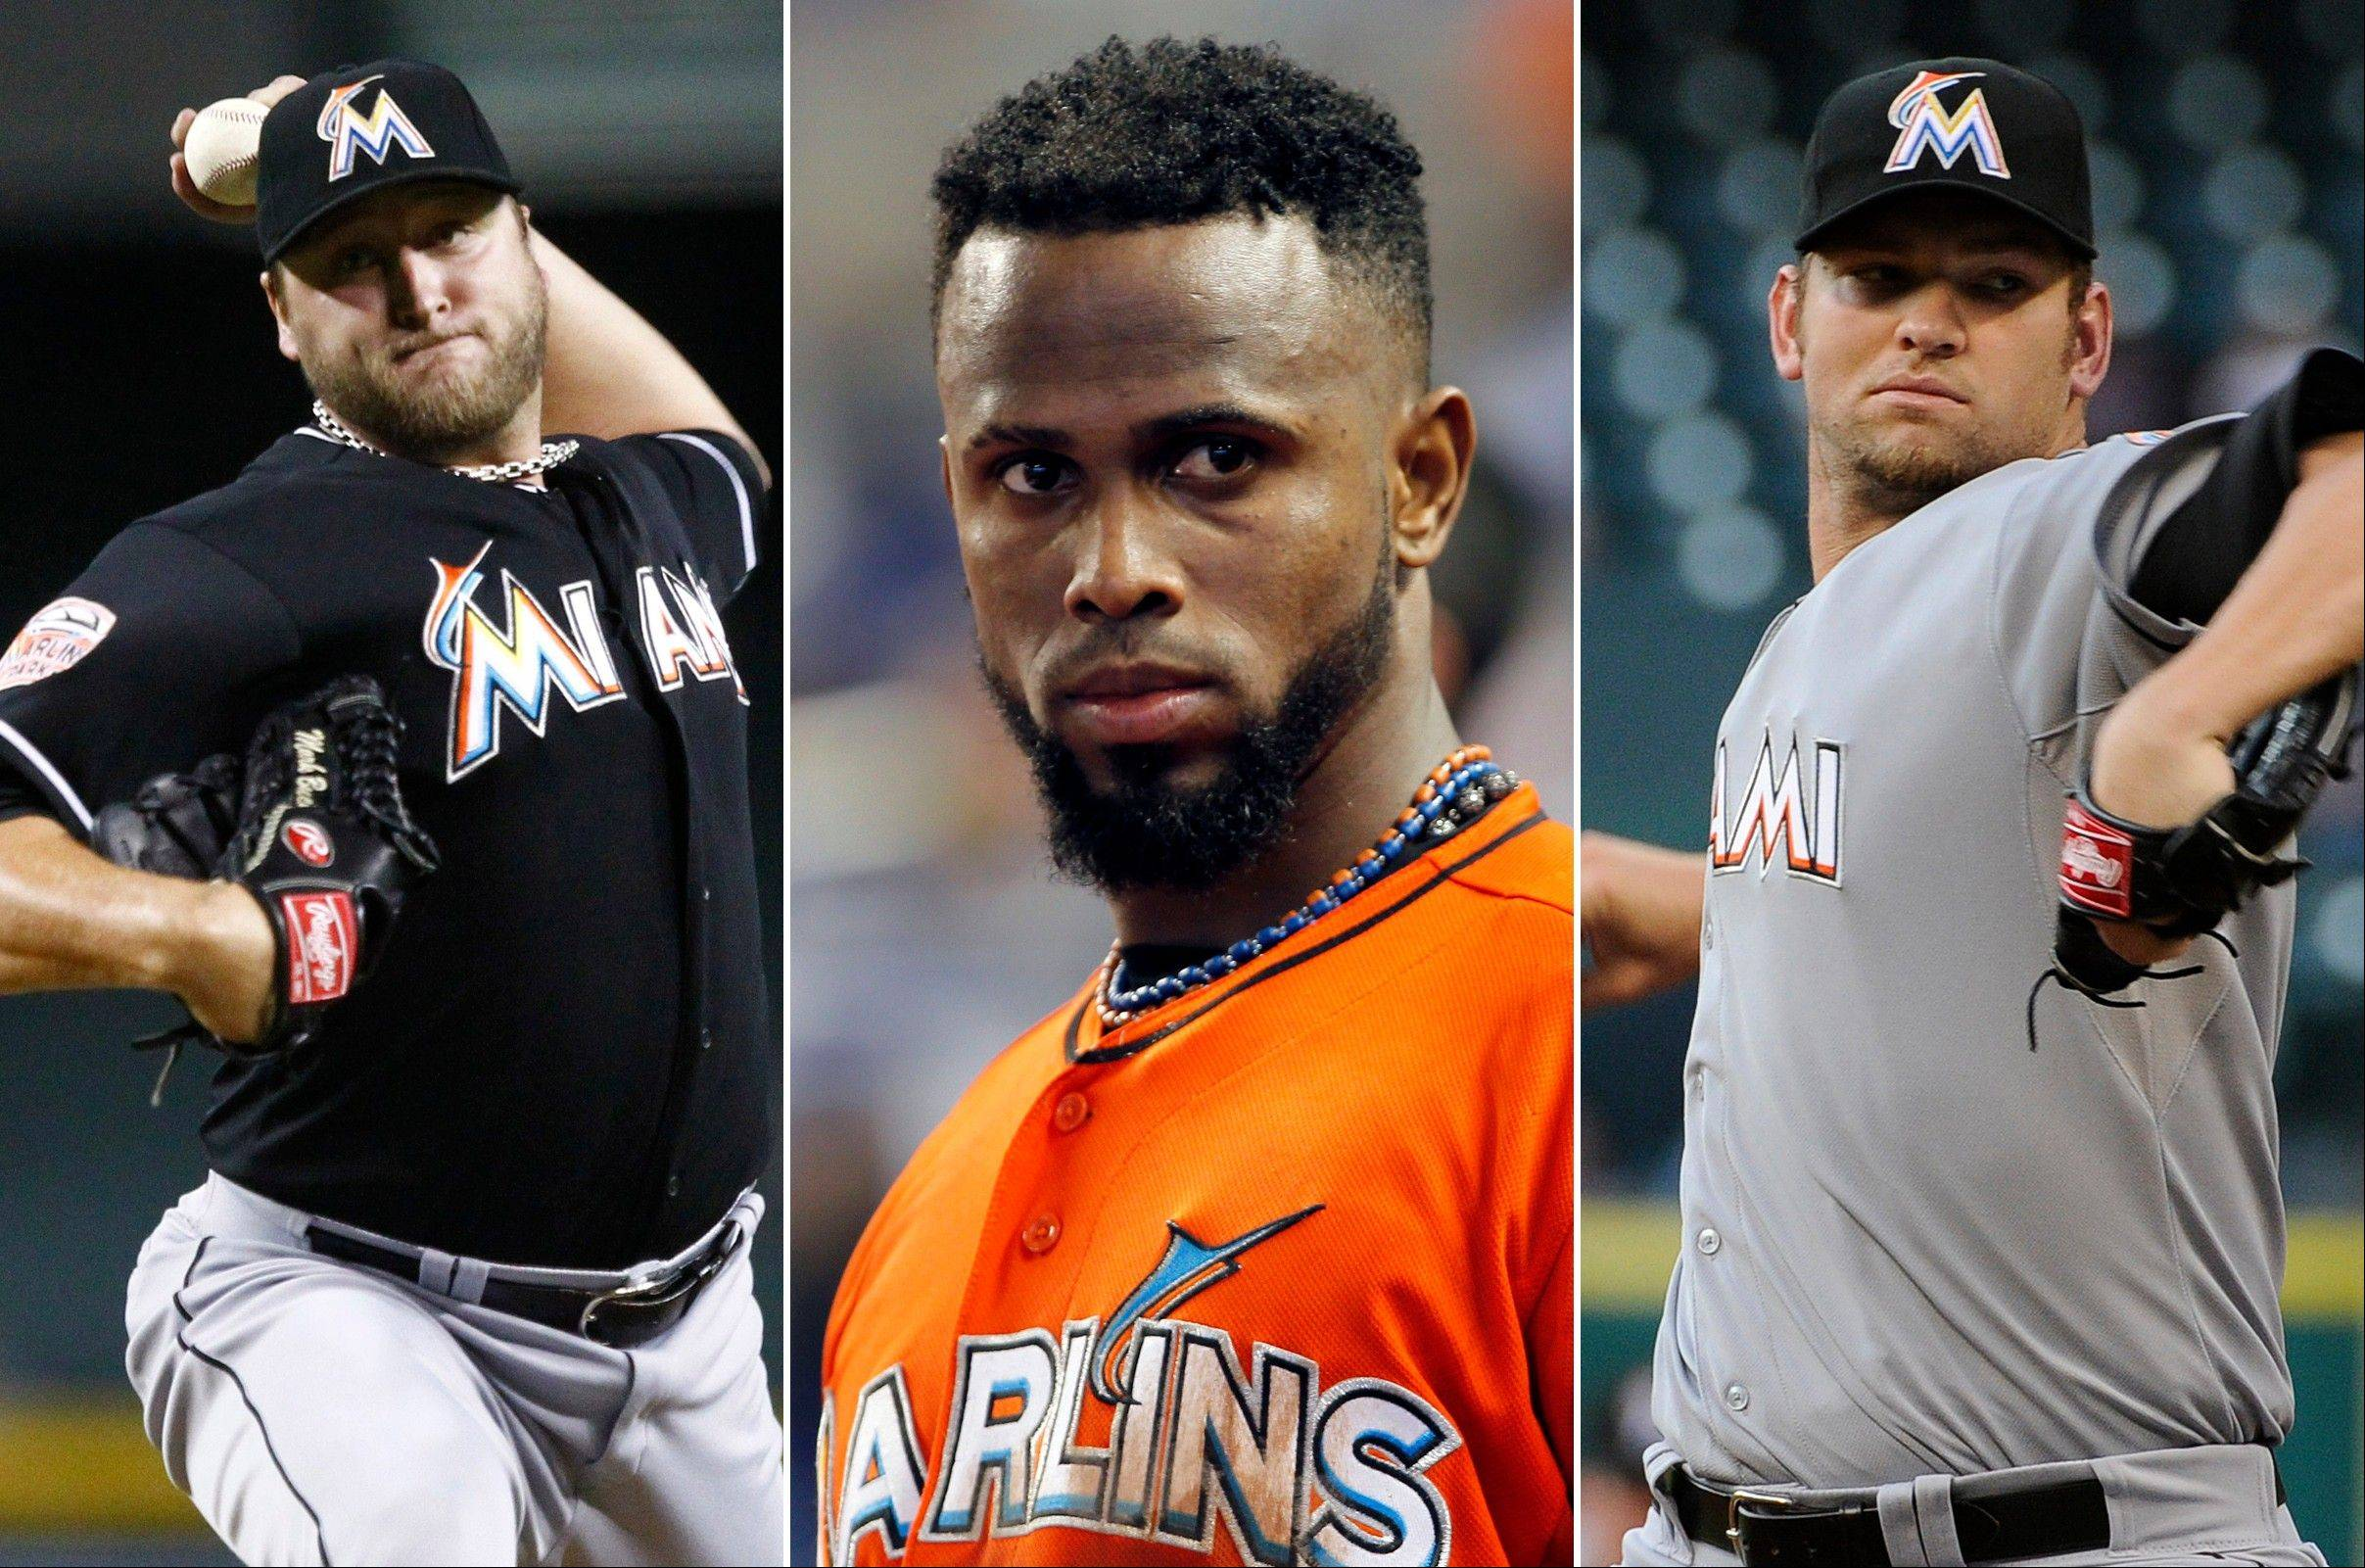 This photo combo made from file photos shows Miami Marlins players, from left, pitcher Mark Buehrle, shortstop Jose Reyes, and pitcher Josh Johnson. Miami traded the three players to the Toronto Blue Jays, a person familiar with the agreement said Tuesday, Nov. 13, 2012. The person confirmed the trade to The Associated Press on condition of anonymity because the teams weren't officially commenting. The person said the trade sent several of the Blue Jays' best young players to Miami.